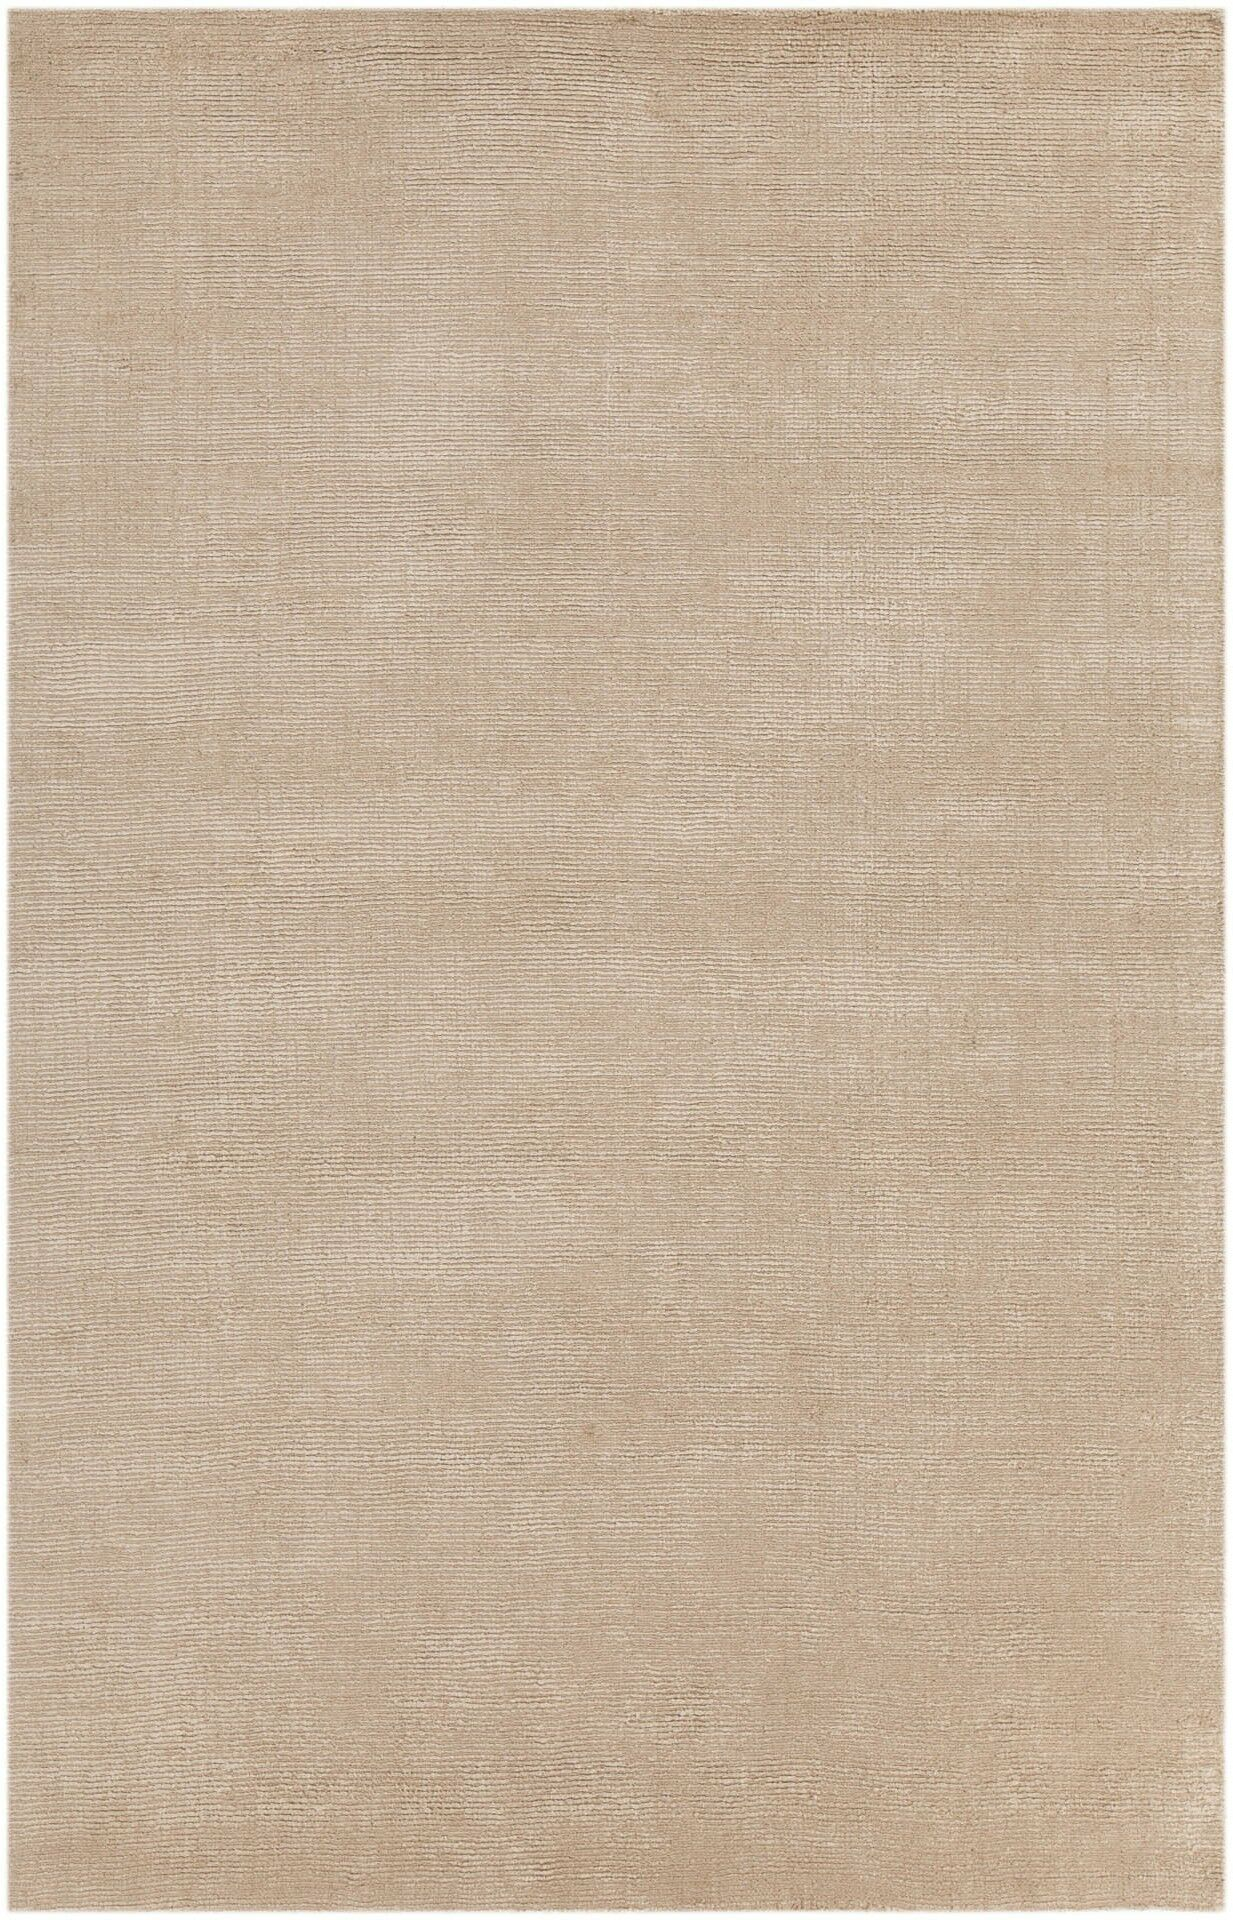 Greger Solid Tan Area Rug Rug Size: 5' x 7'6